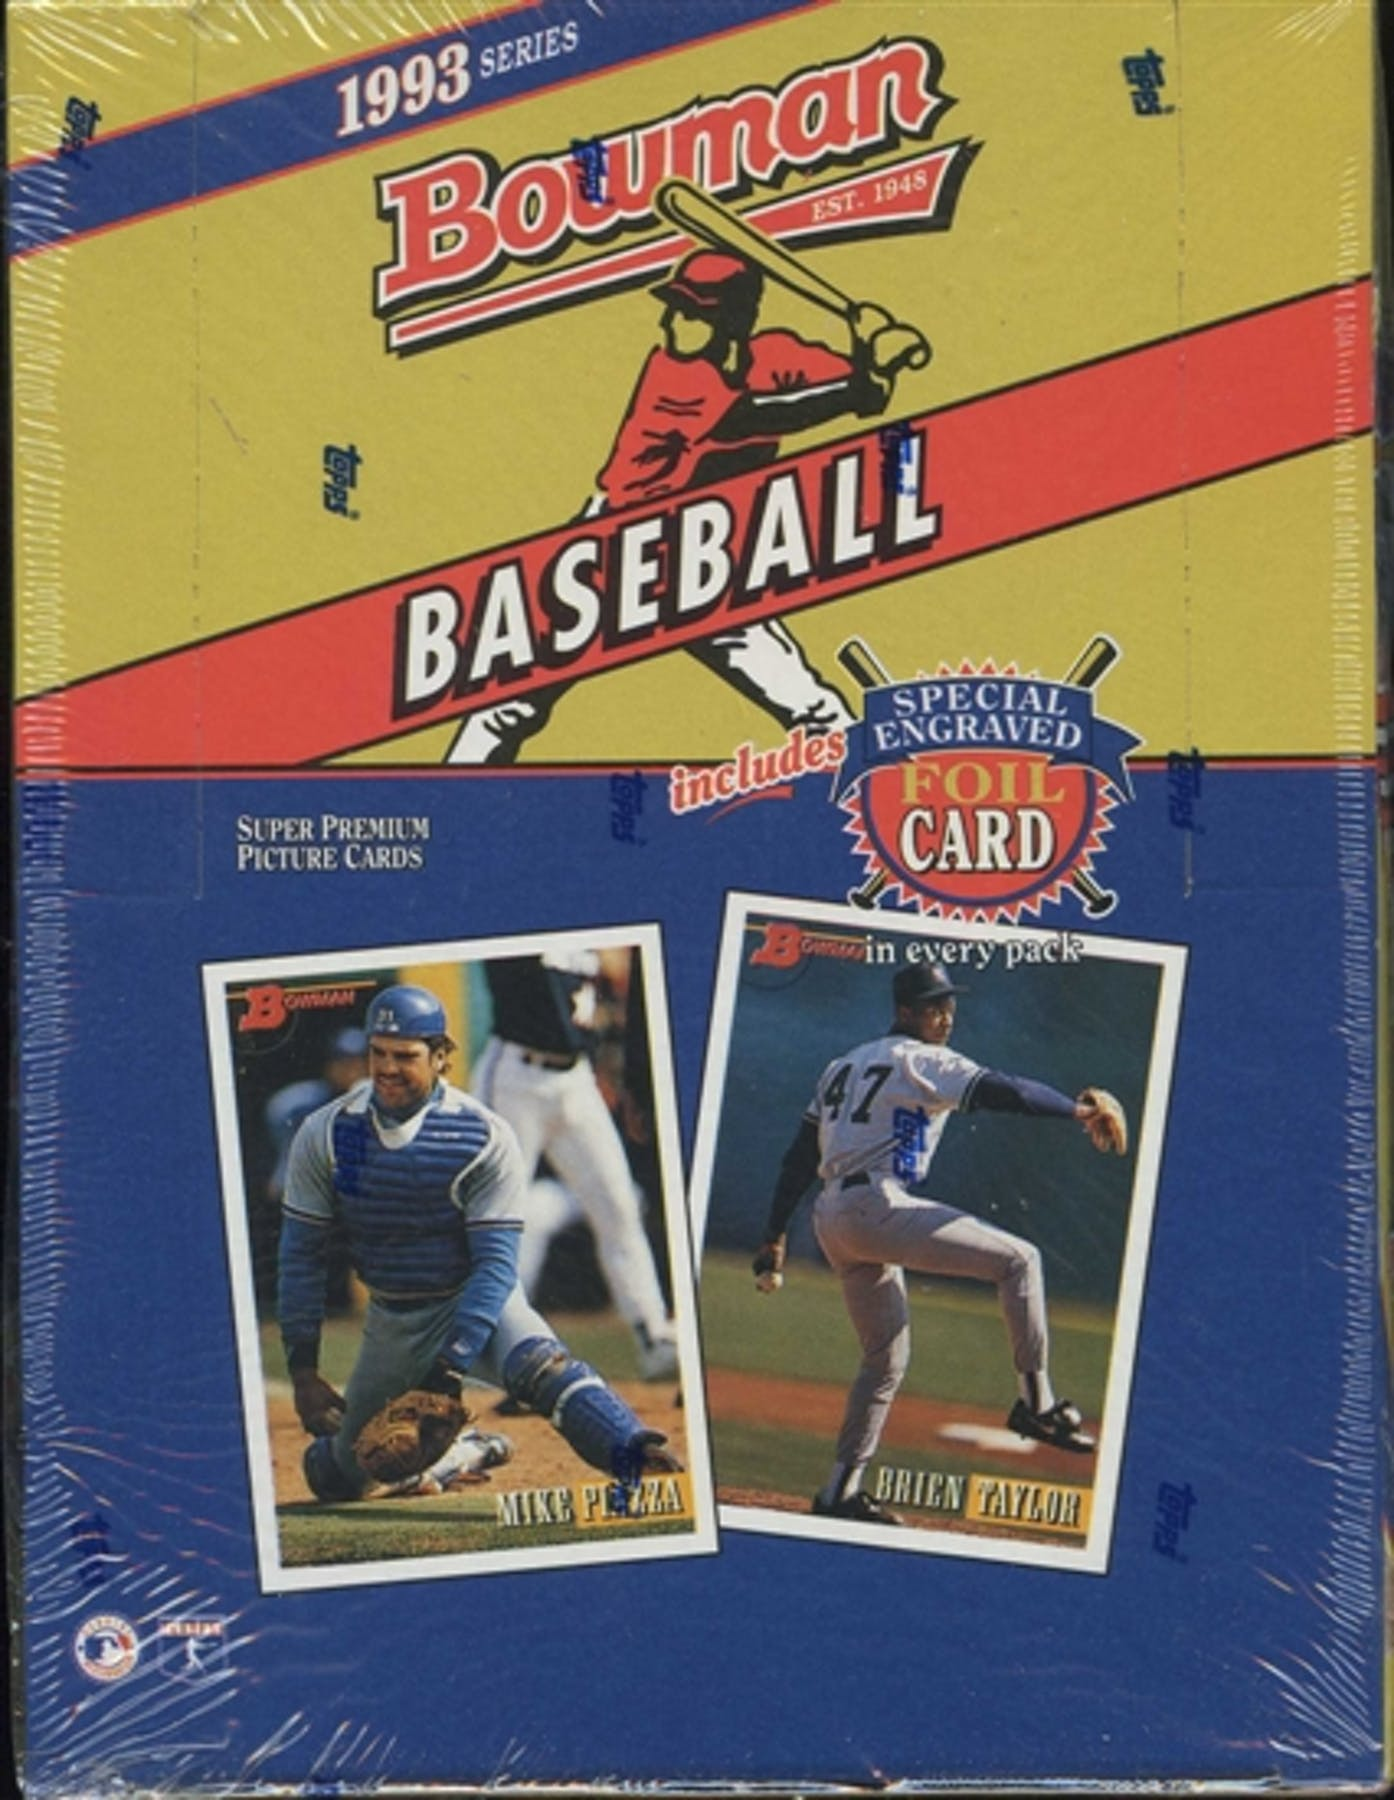 1993 Bowman Baseball Hobby Box Da Card World